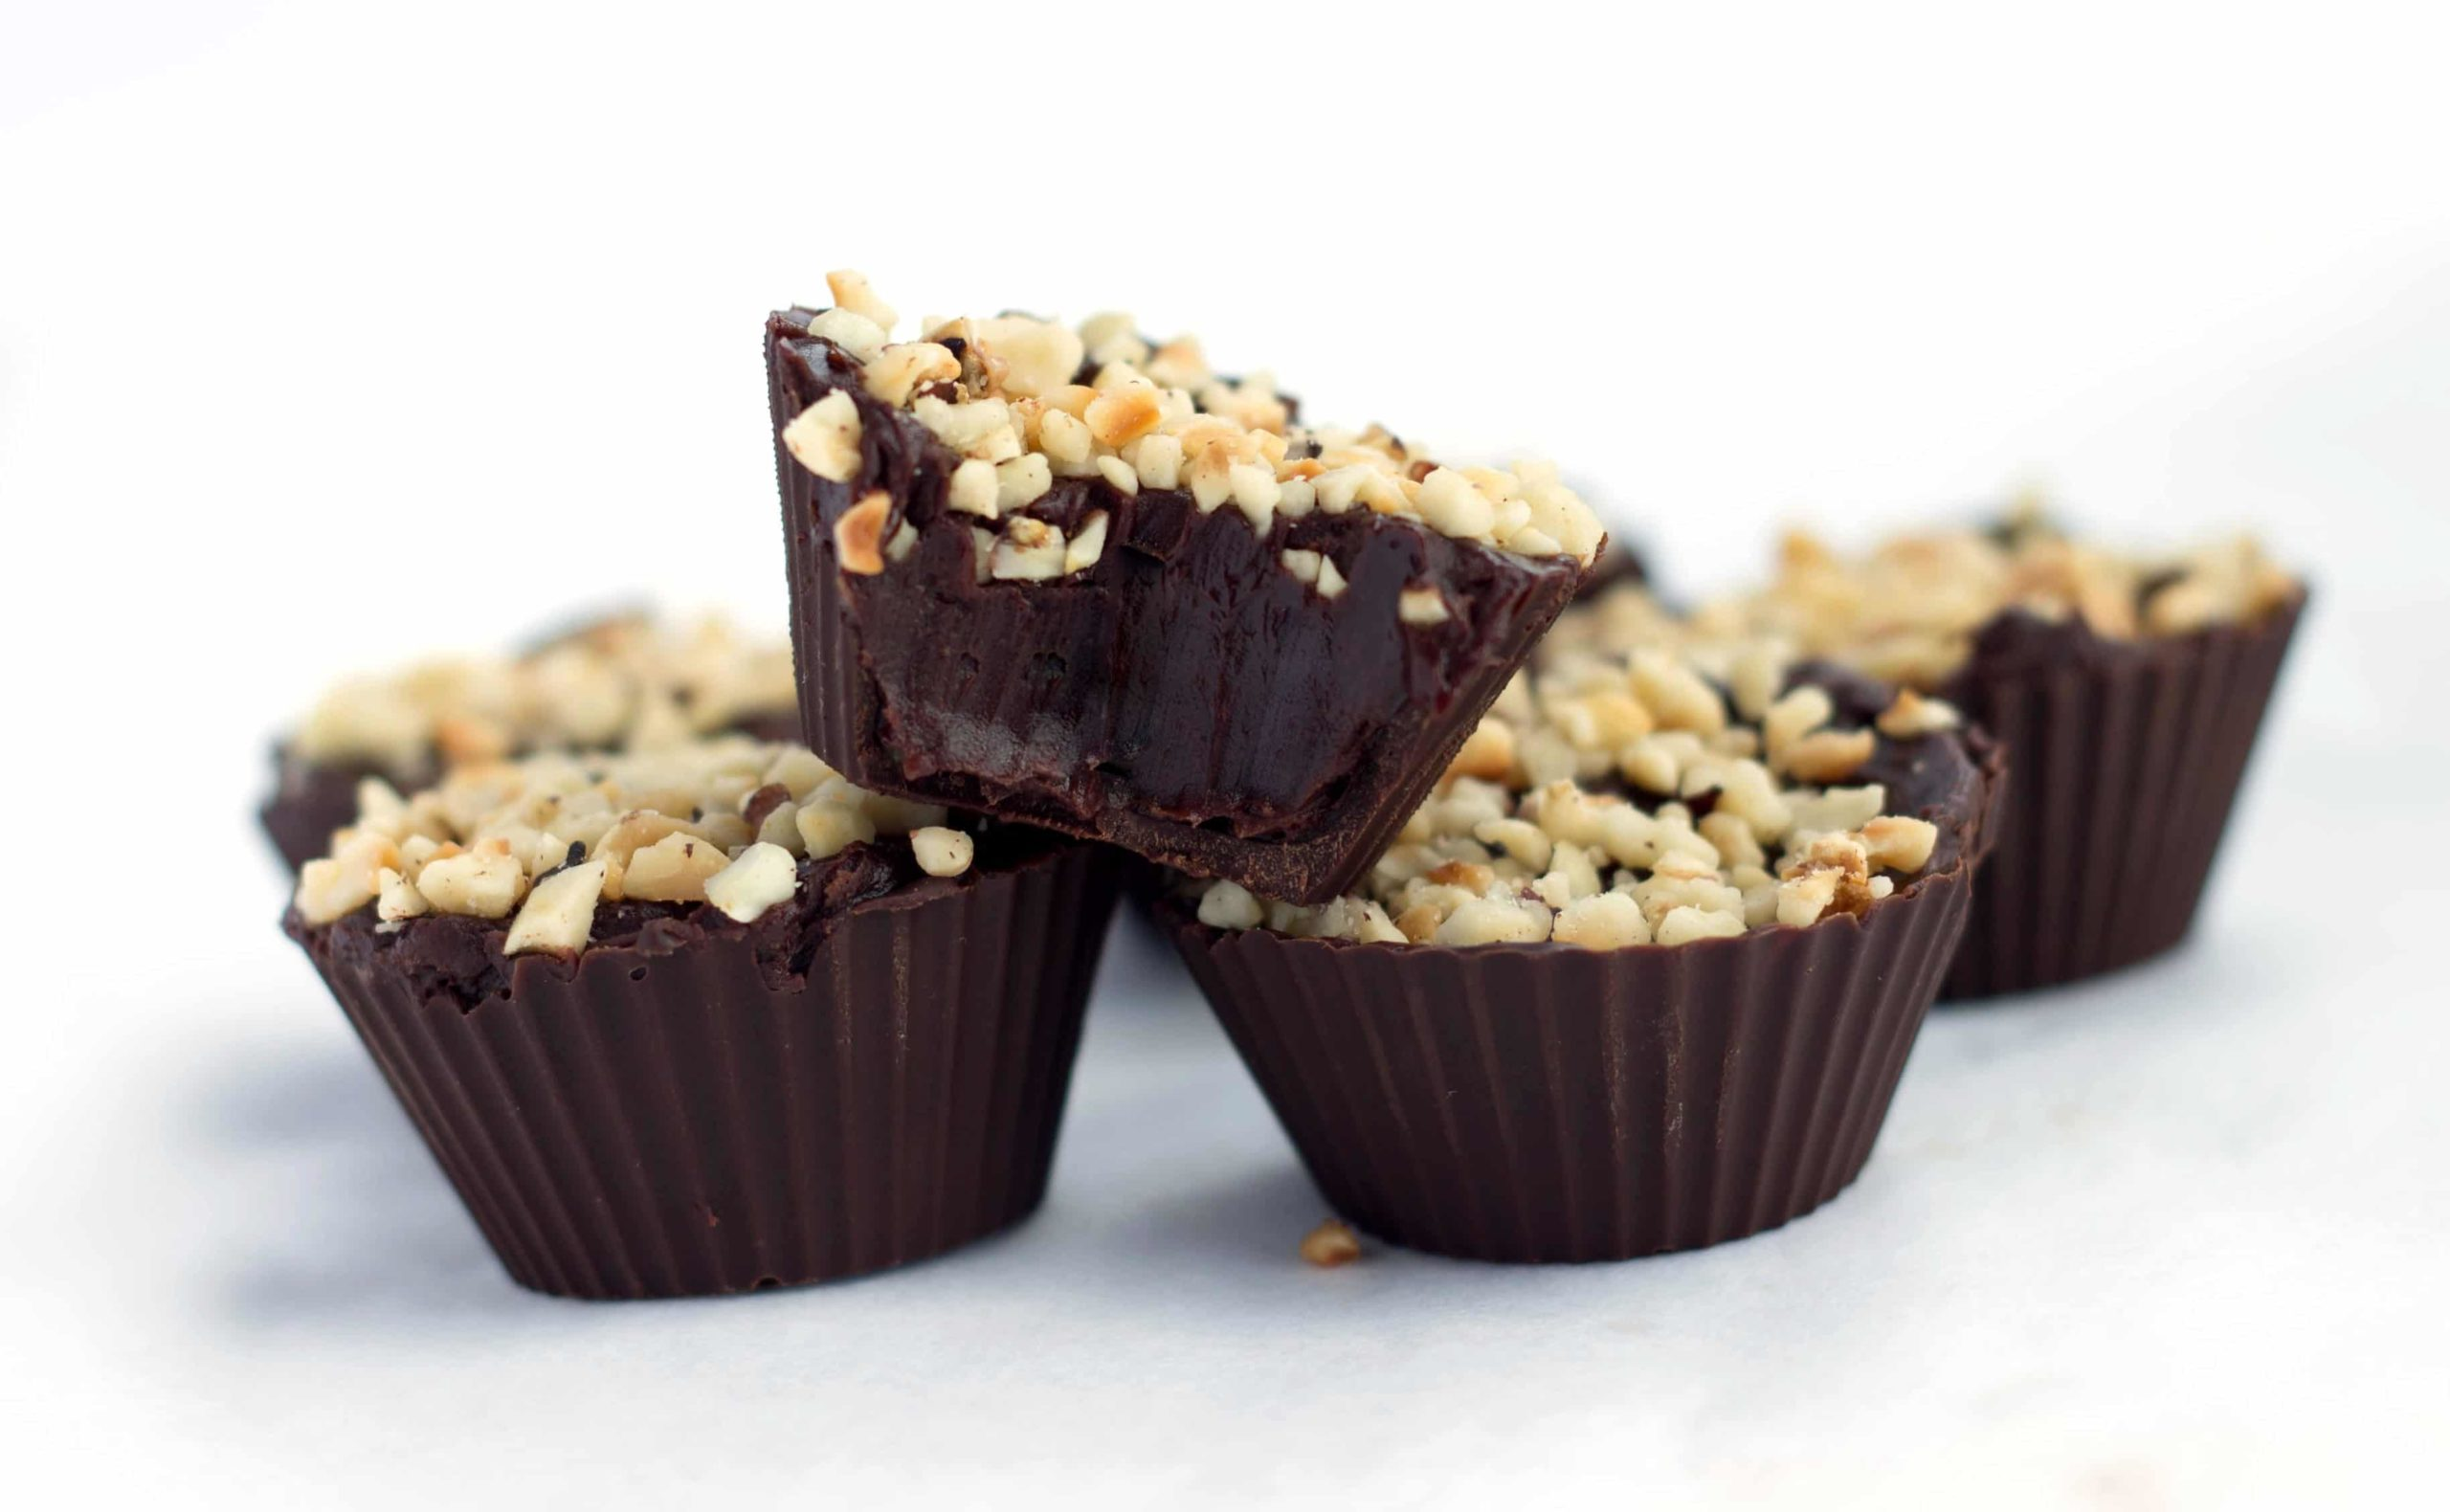 Chocolate Hazelnut Truffle Cups in a pile.